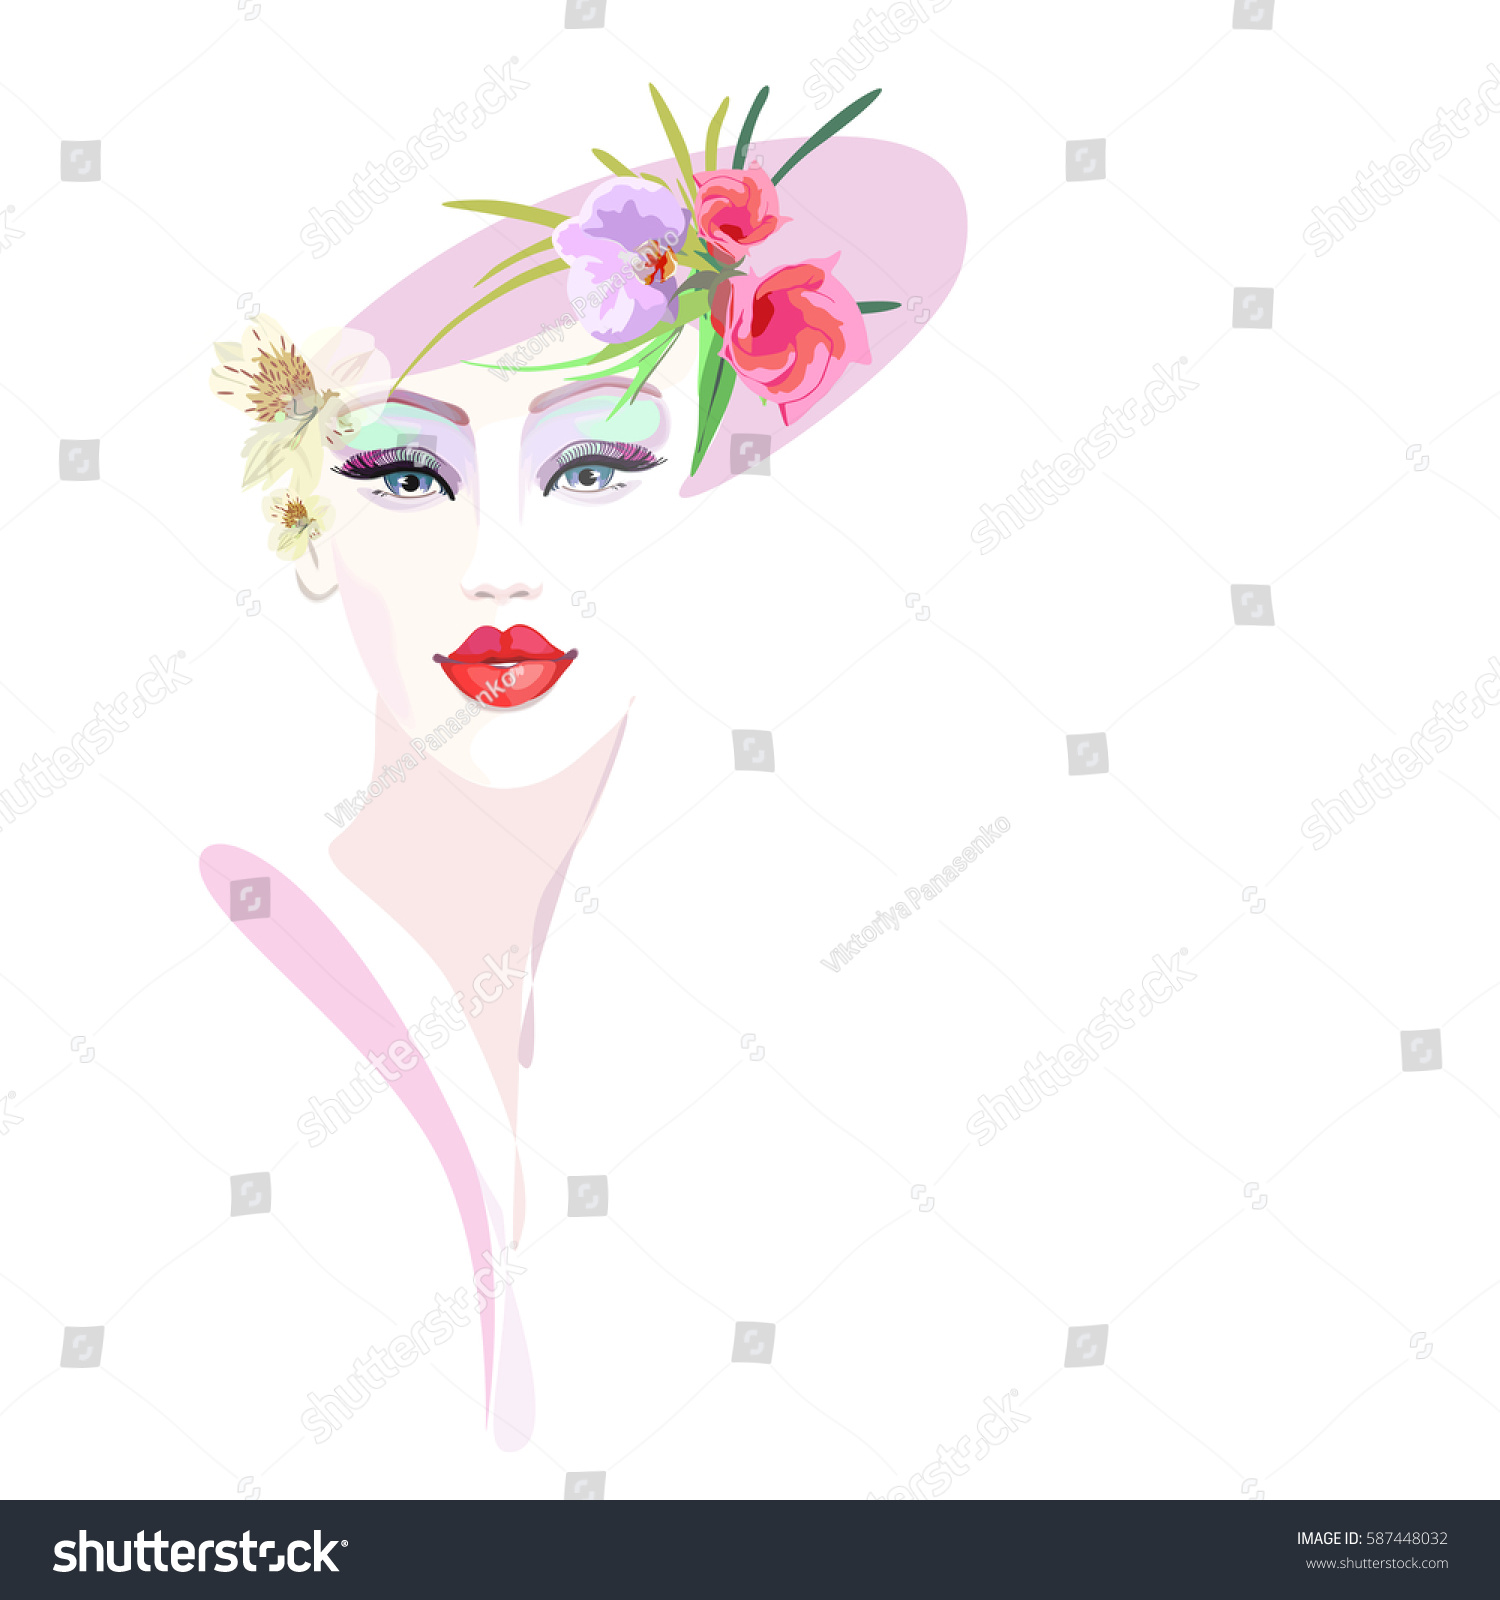 c769005c66 Abstract Watercolor Portrait Girl Floral Hat Stock Vector (Royalty ...